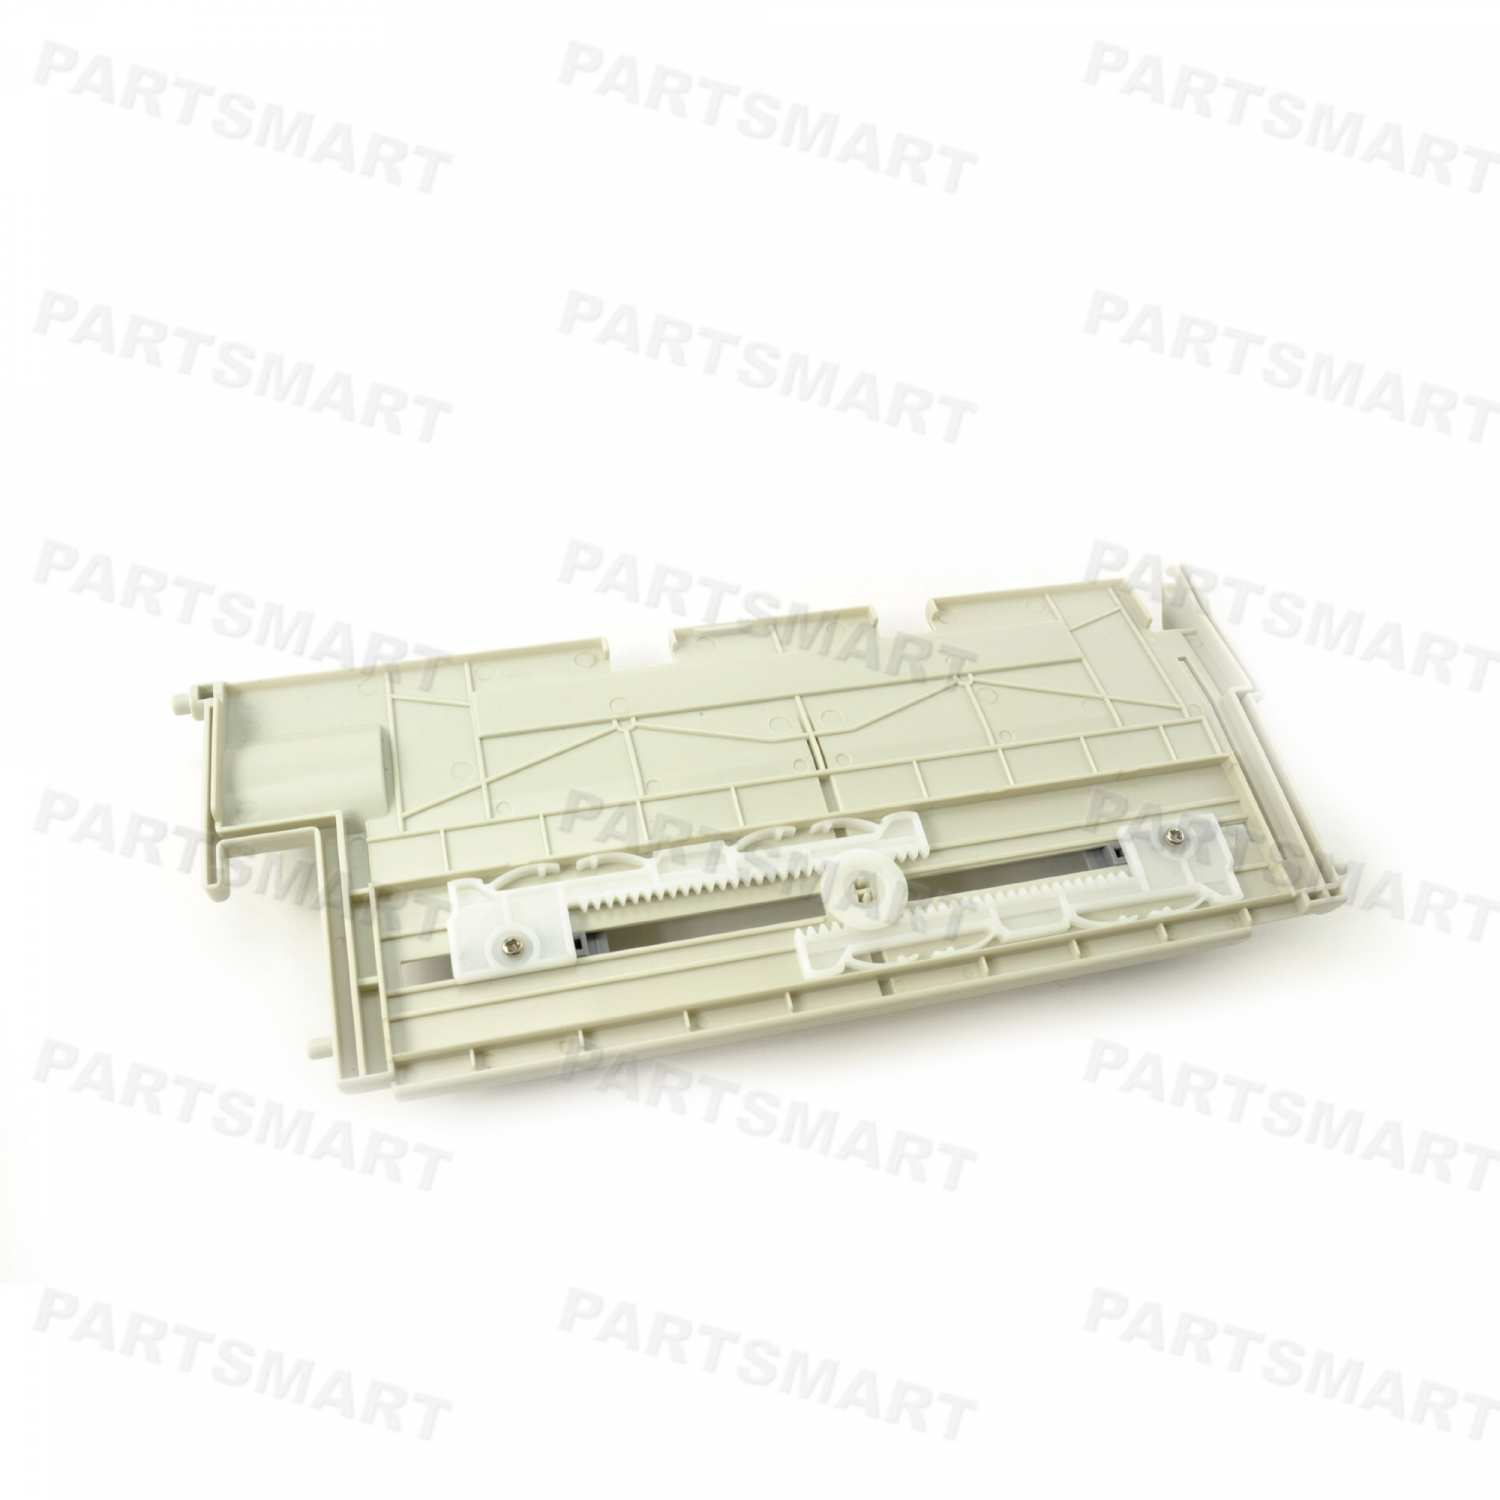 RM1-0005-000 Drop-Down Tray 1 Assy for HP LaserJet 4200, LaserJet 4250